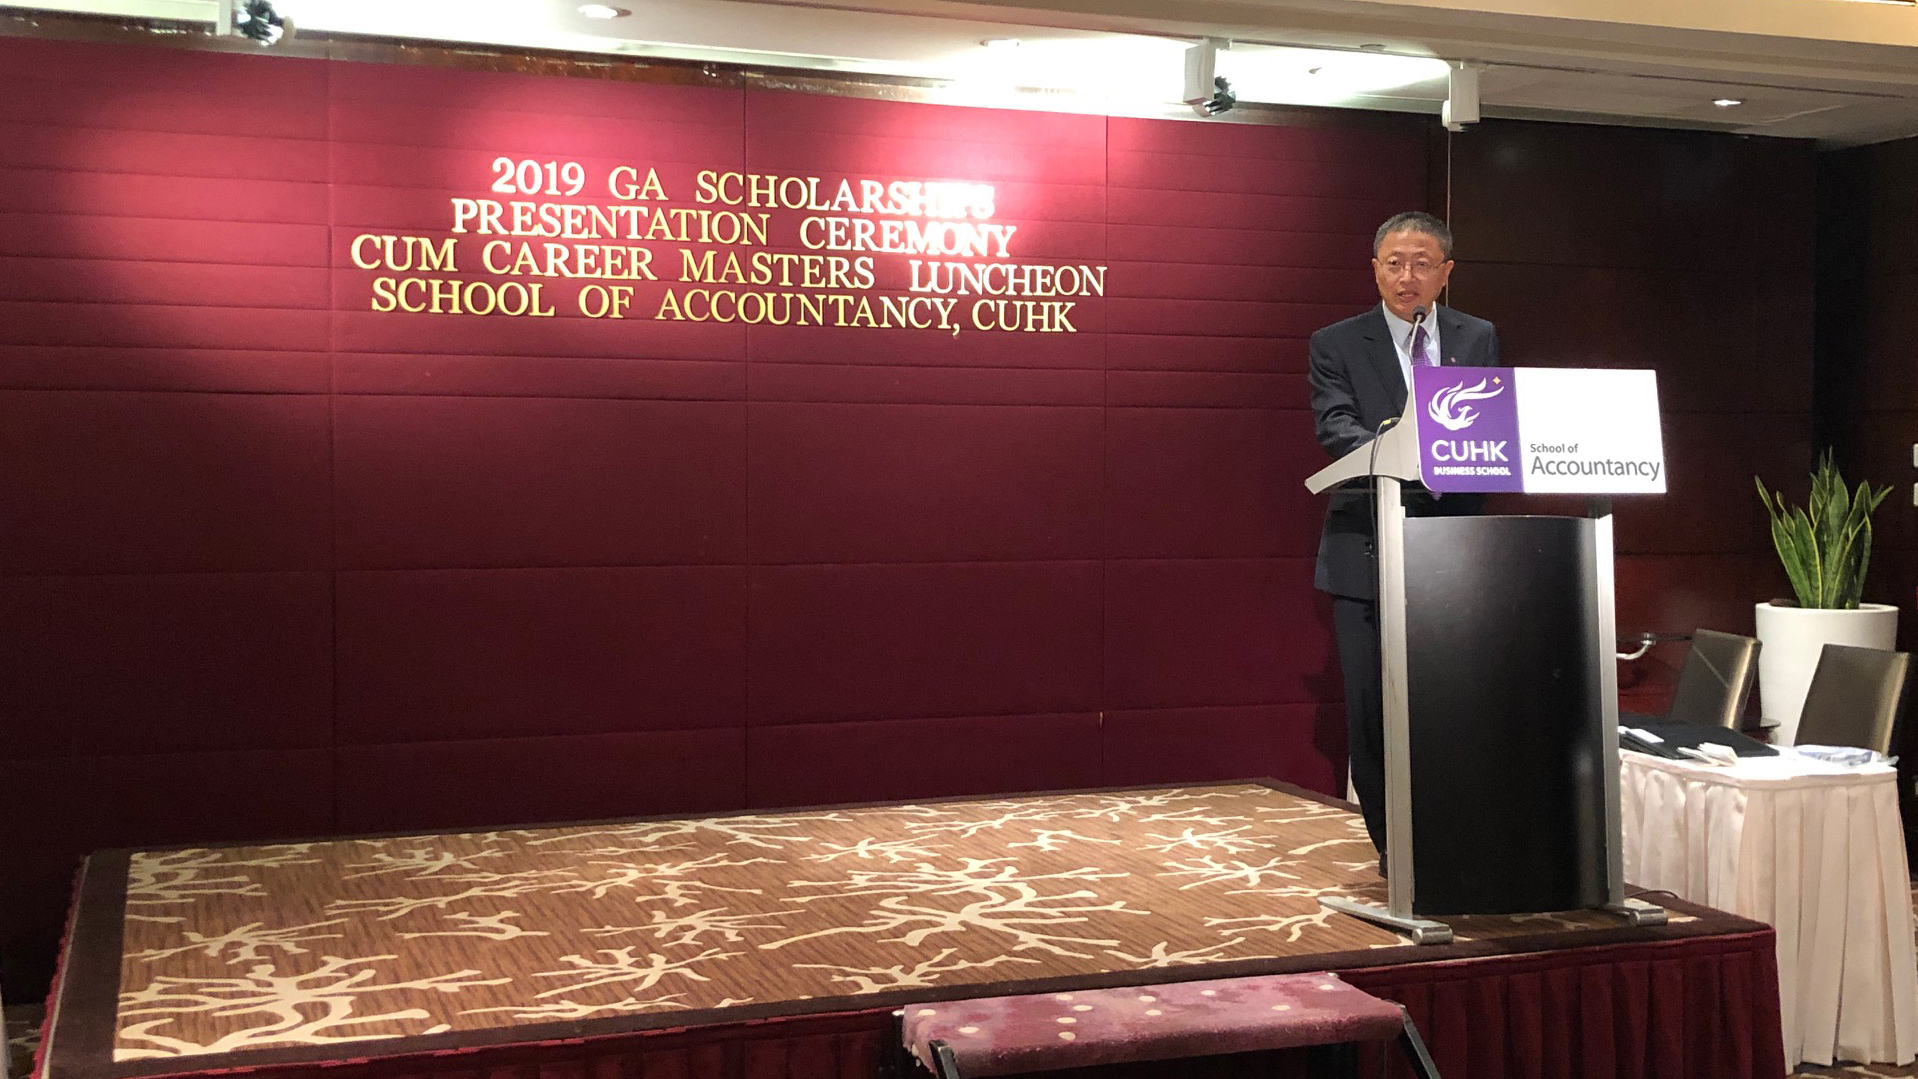 Prof. Zhaoyang Gu, Chairman of School of Accountancy speaking at the Global Accounting Scholarships Presentation Ceremony cum Career Masters Luncheon